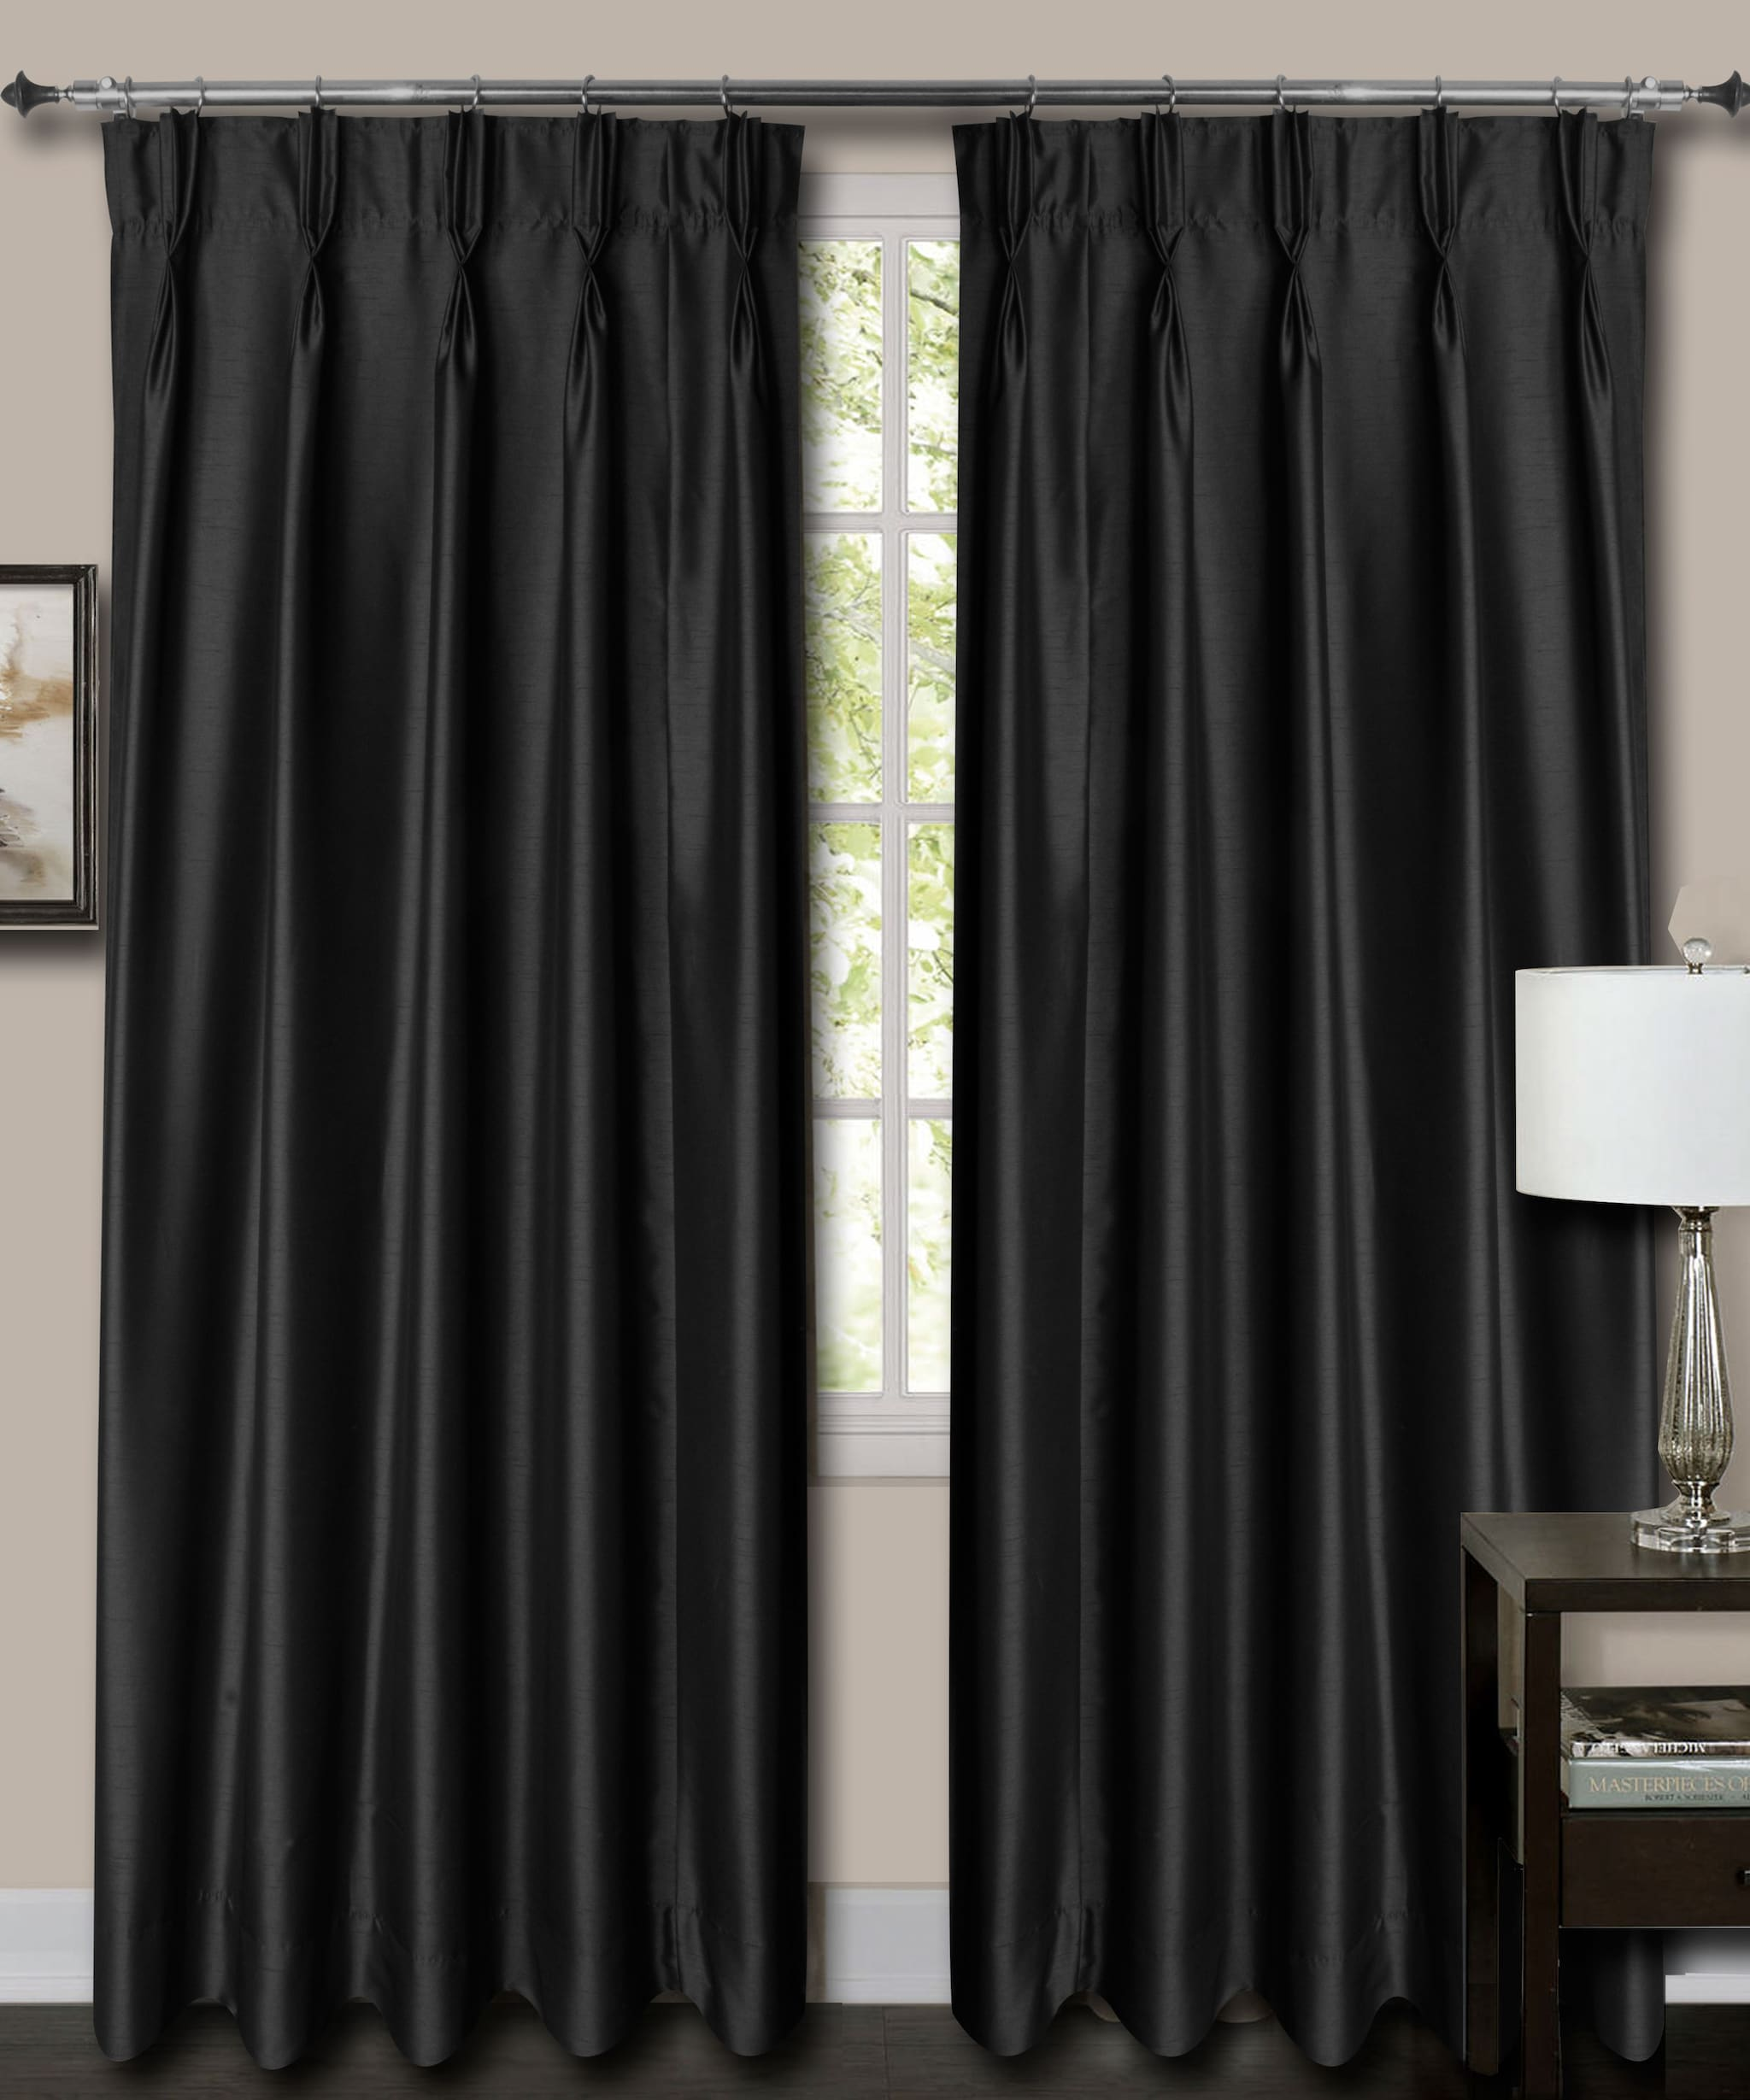 "French Pleat Top Black Faux Silk Dupioni Curtains. (78"" Wide,4 Feet Long,Blackout Lining)"